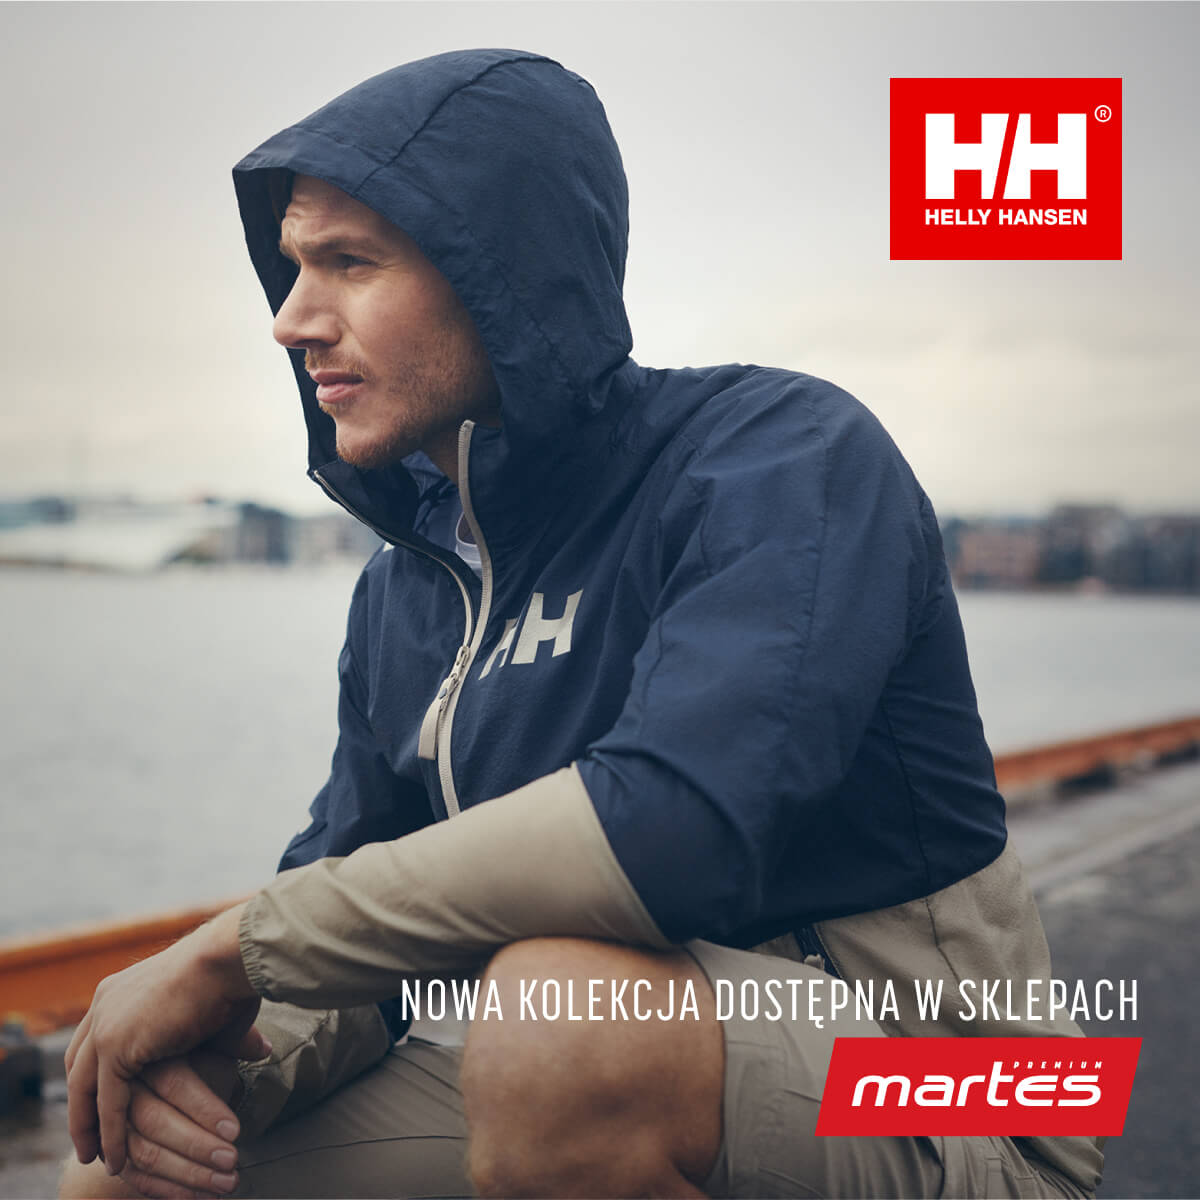 New Helly Hansen collection is now available at Martes Sport!